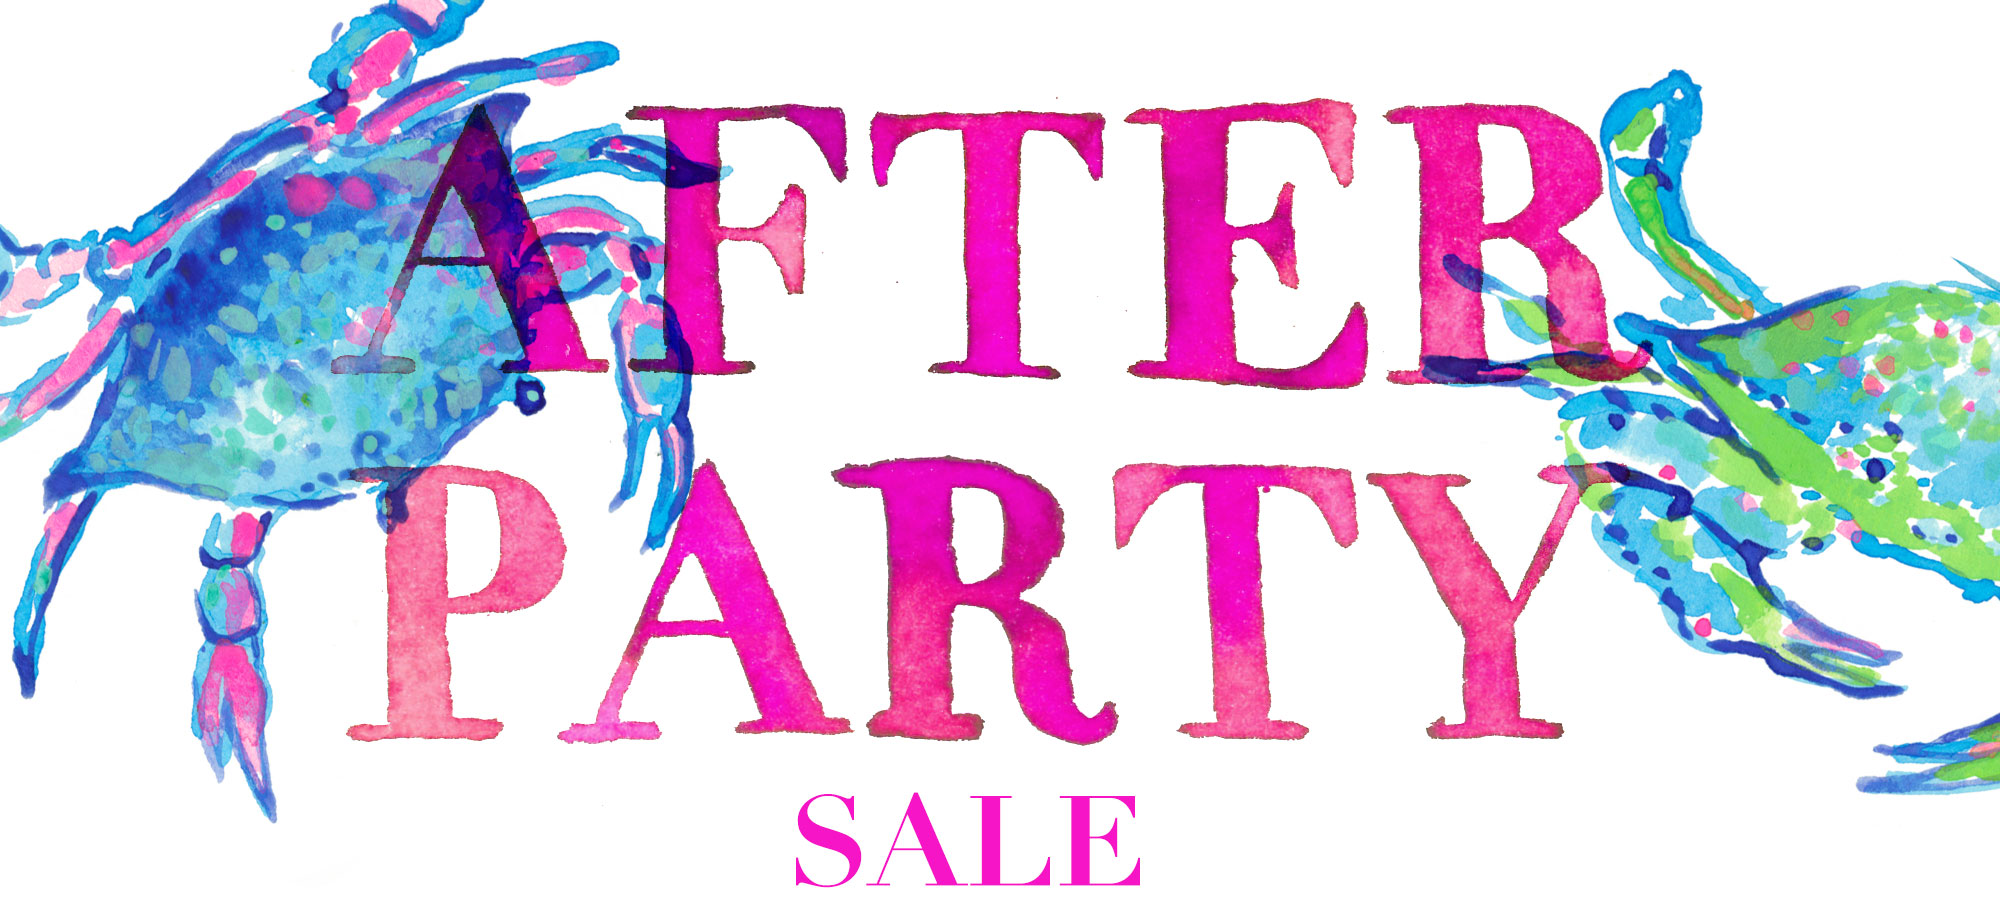 Lilly Pulitzer After Party Sale - DC Girl in Pearls